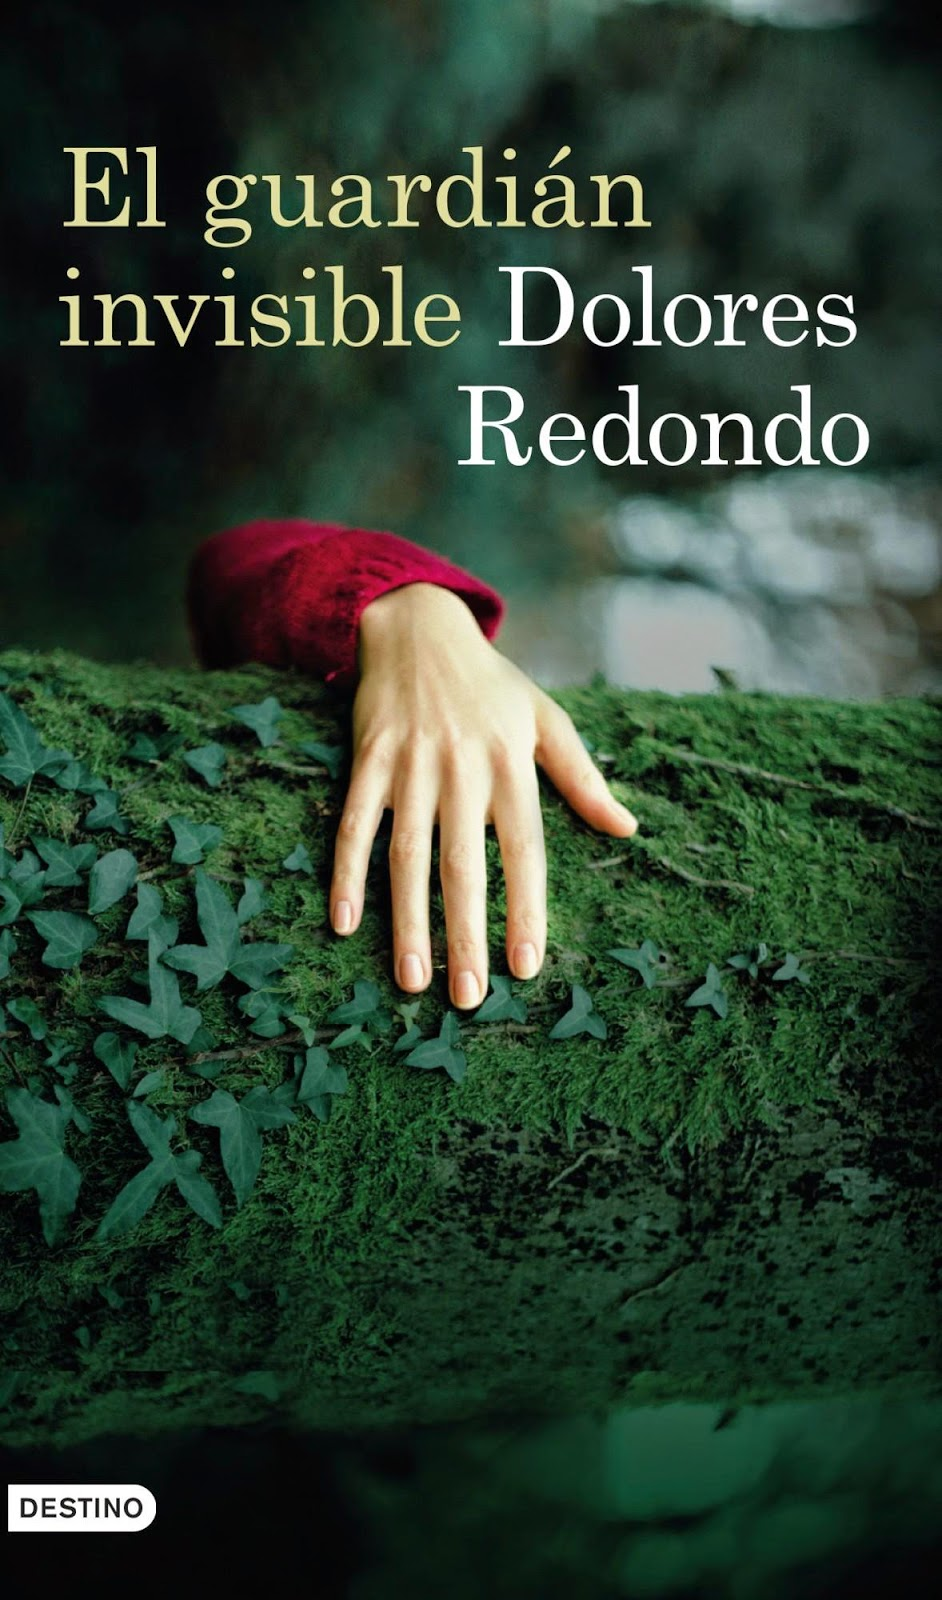 El guardían invisible - Dolores Redondo (2013)